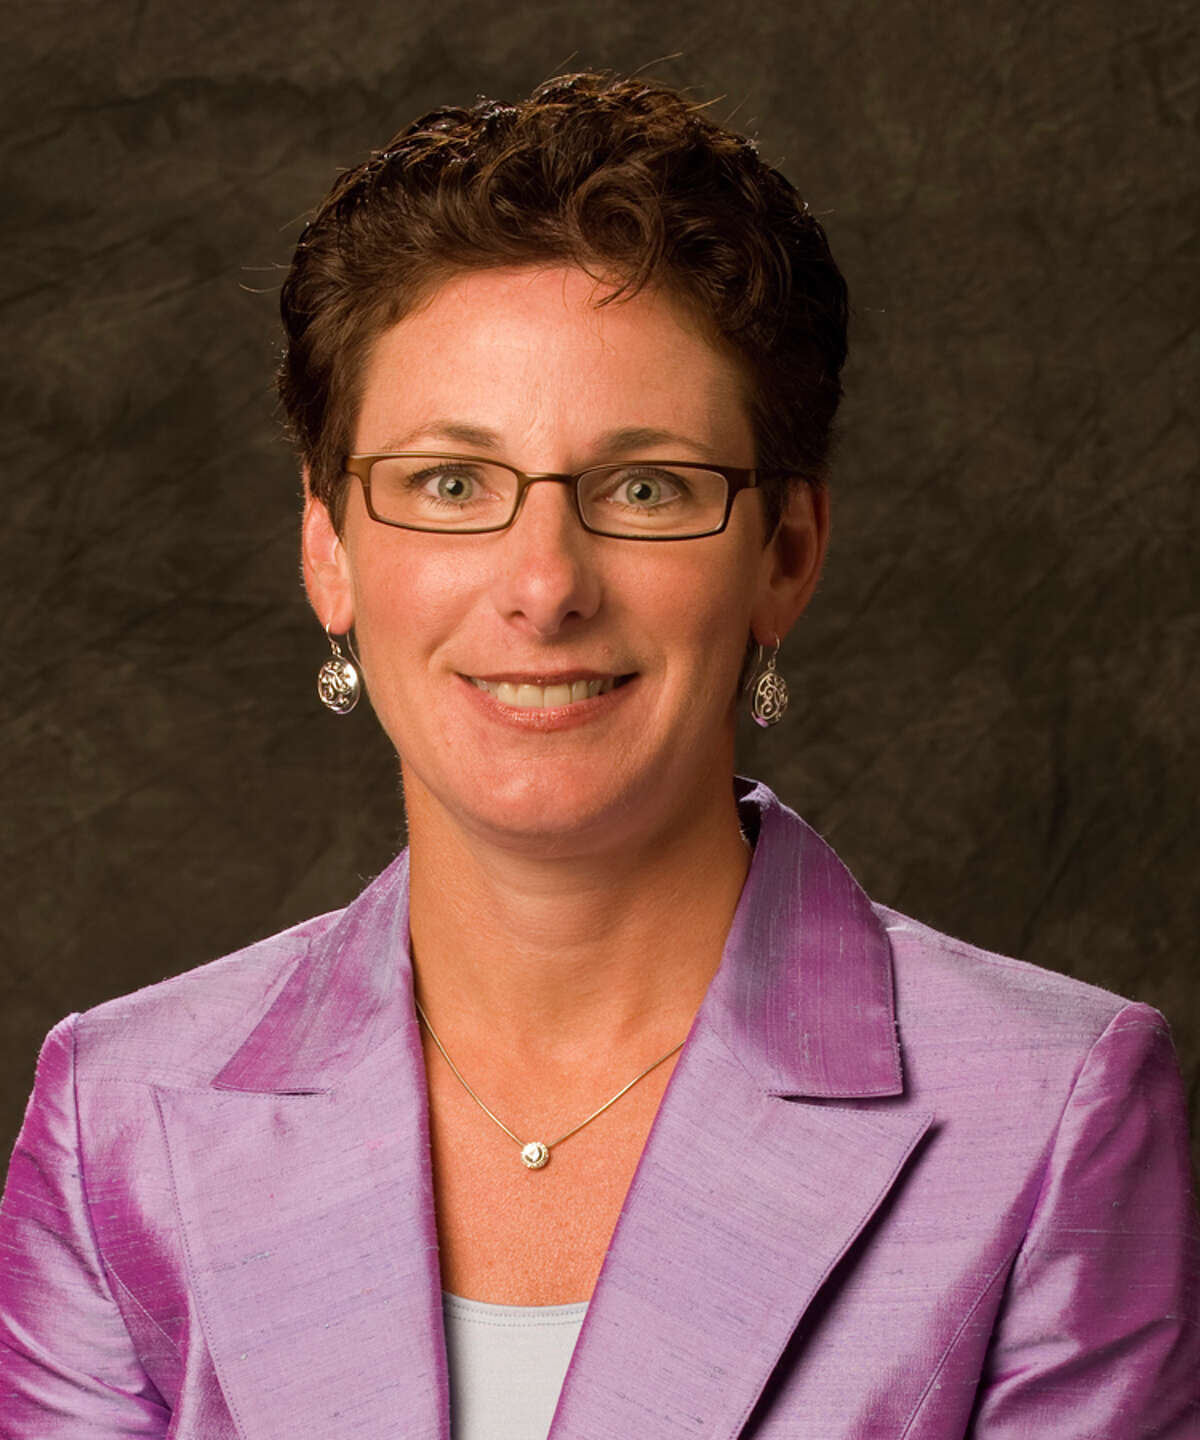 Ann Ackerson ,chief procurement officer and vice president of supply chain management, Dresser-Rand, part of Siemens AG Power and Gas